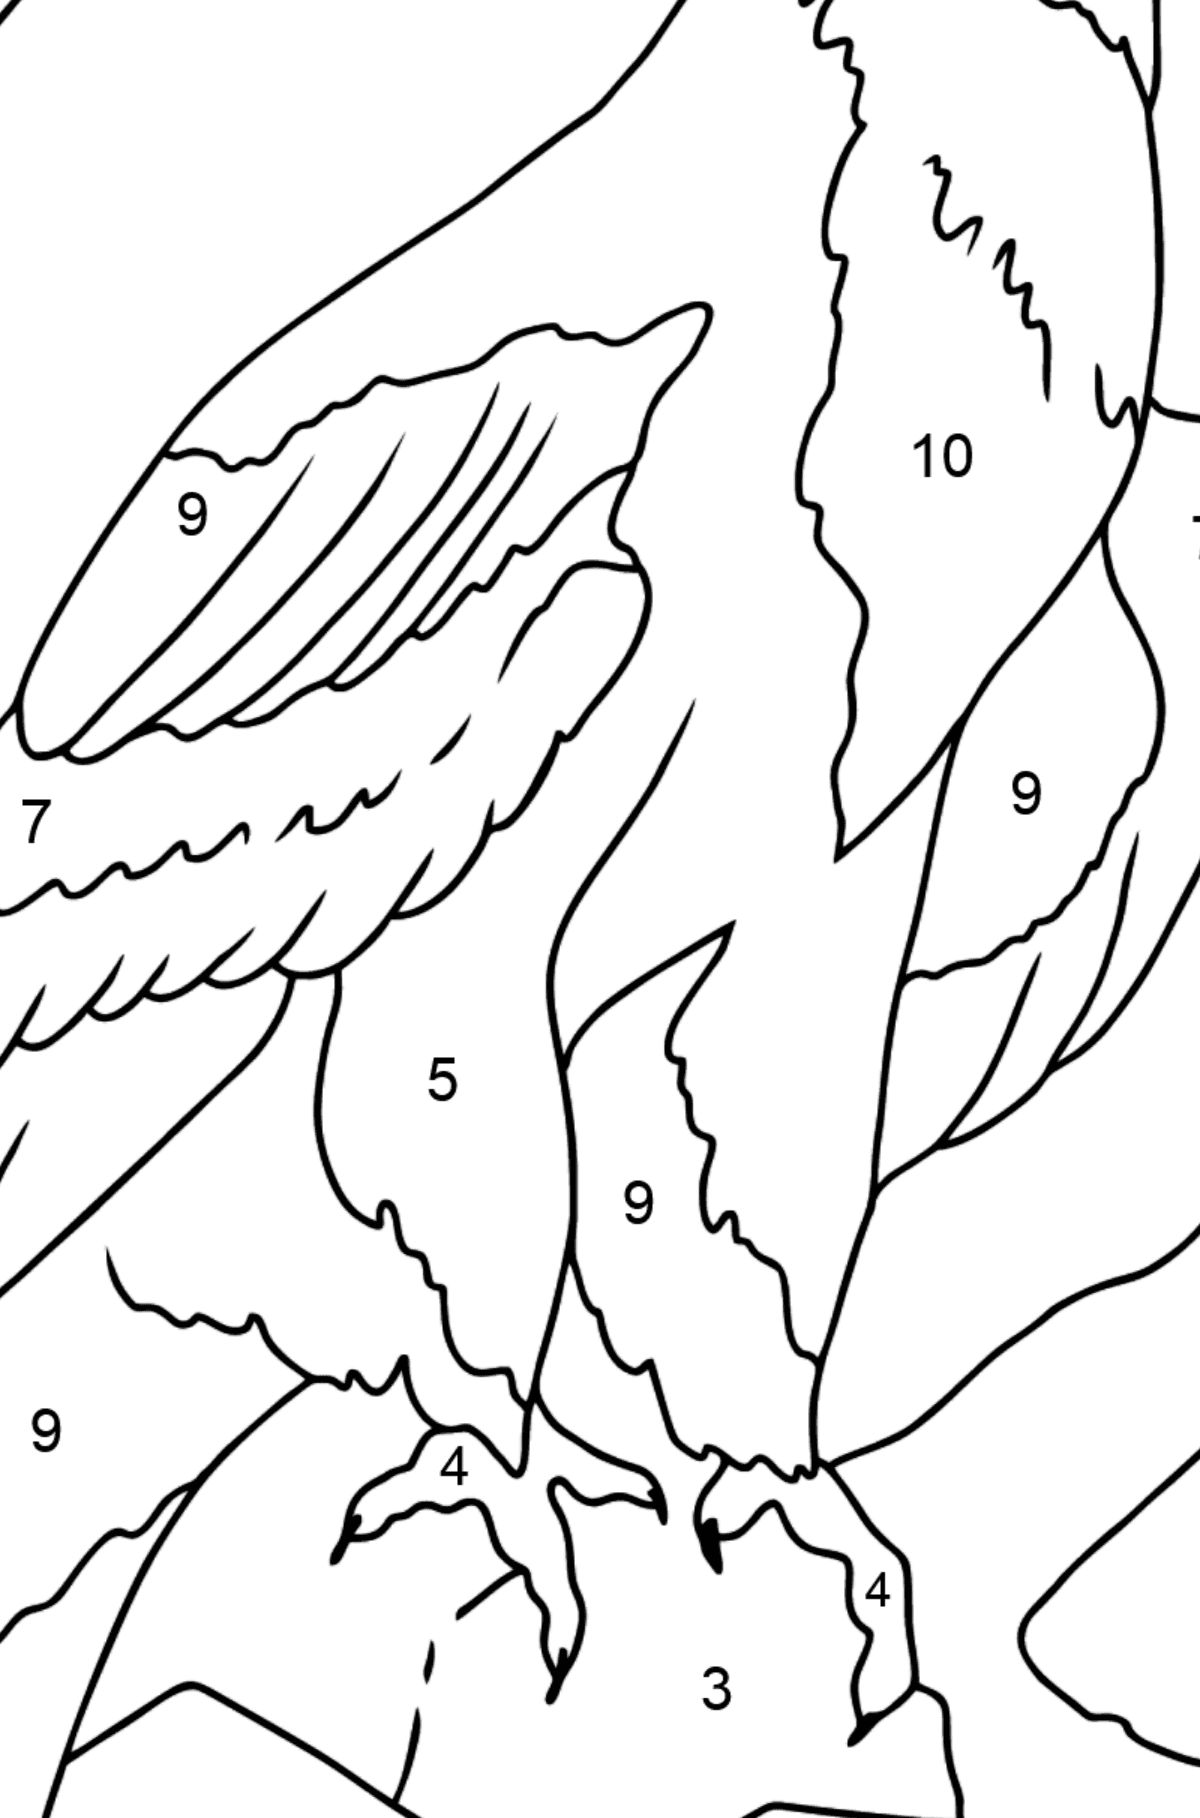 Coloring Page - An Alpine Eagle - Coloring by Numbers for Kids